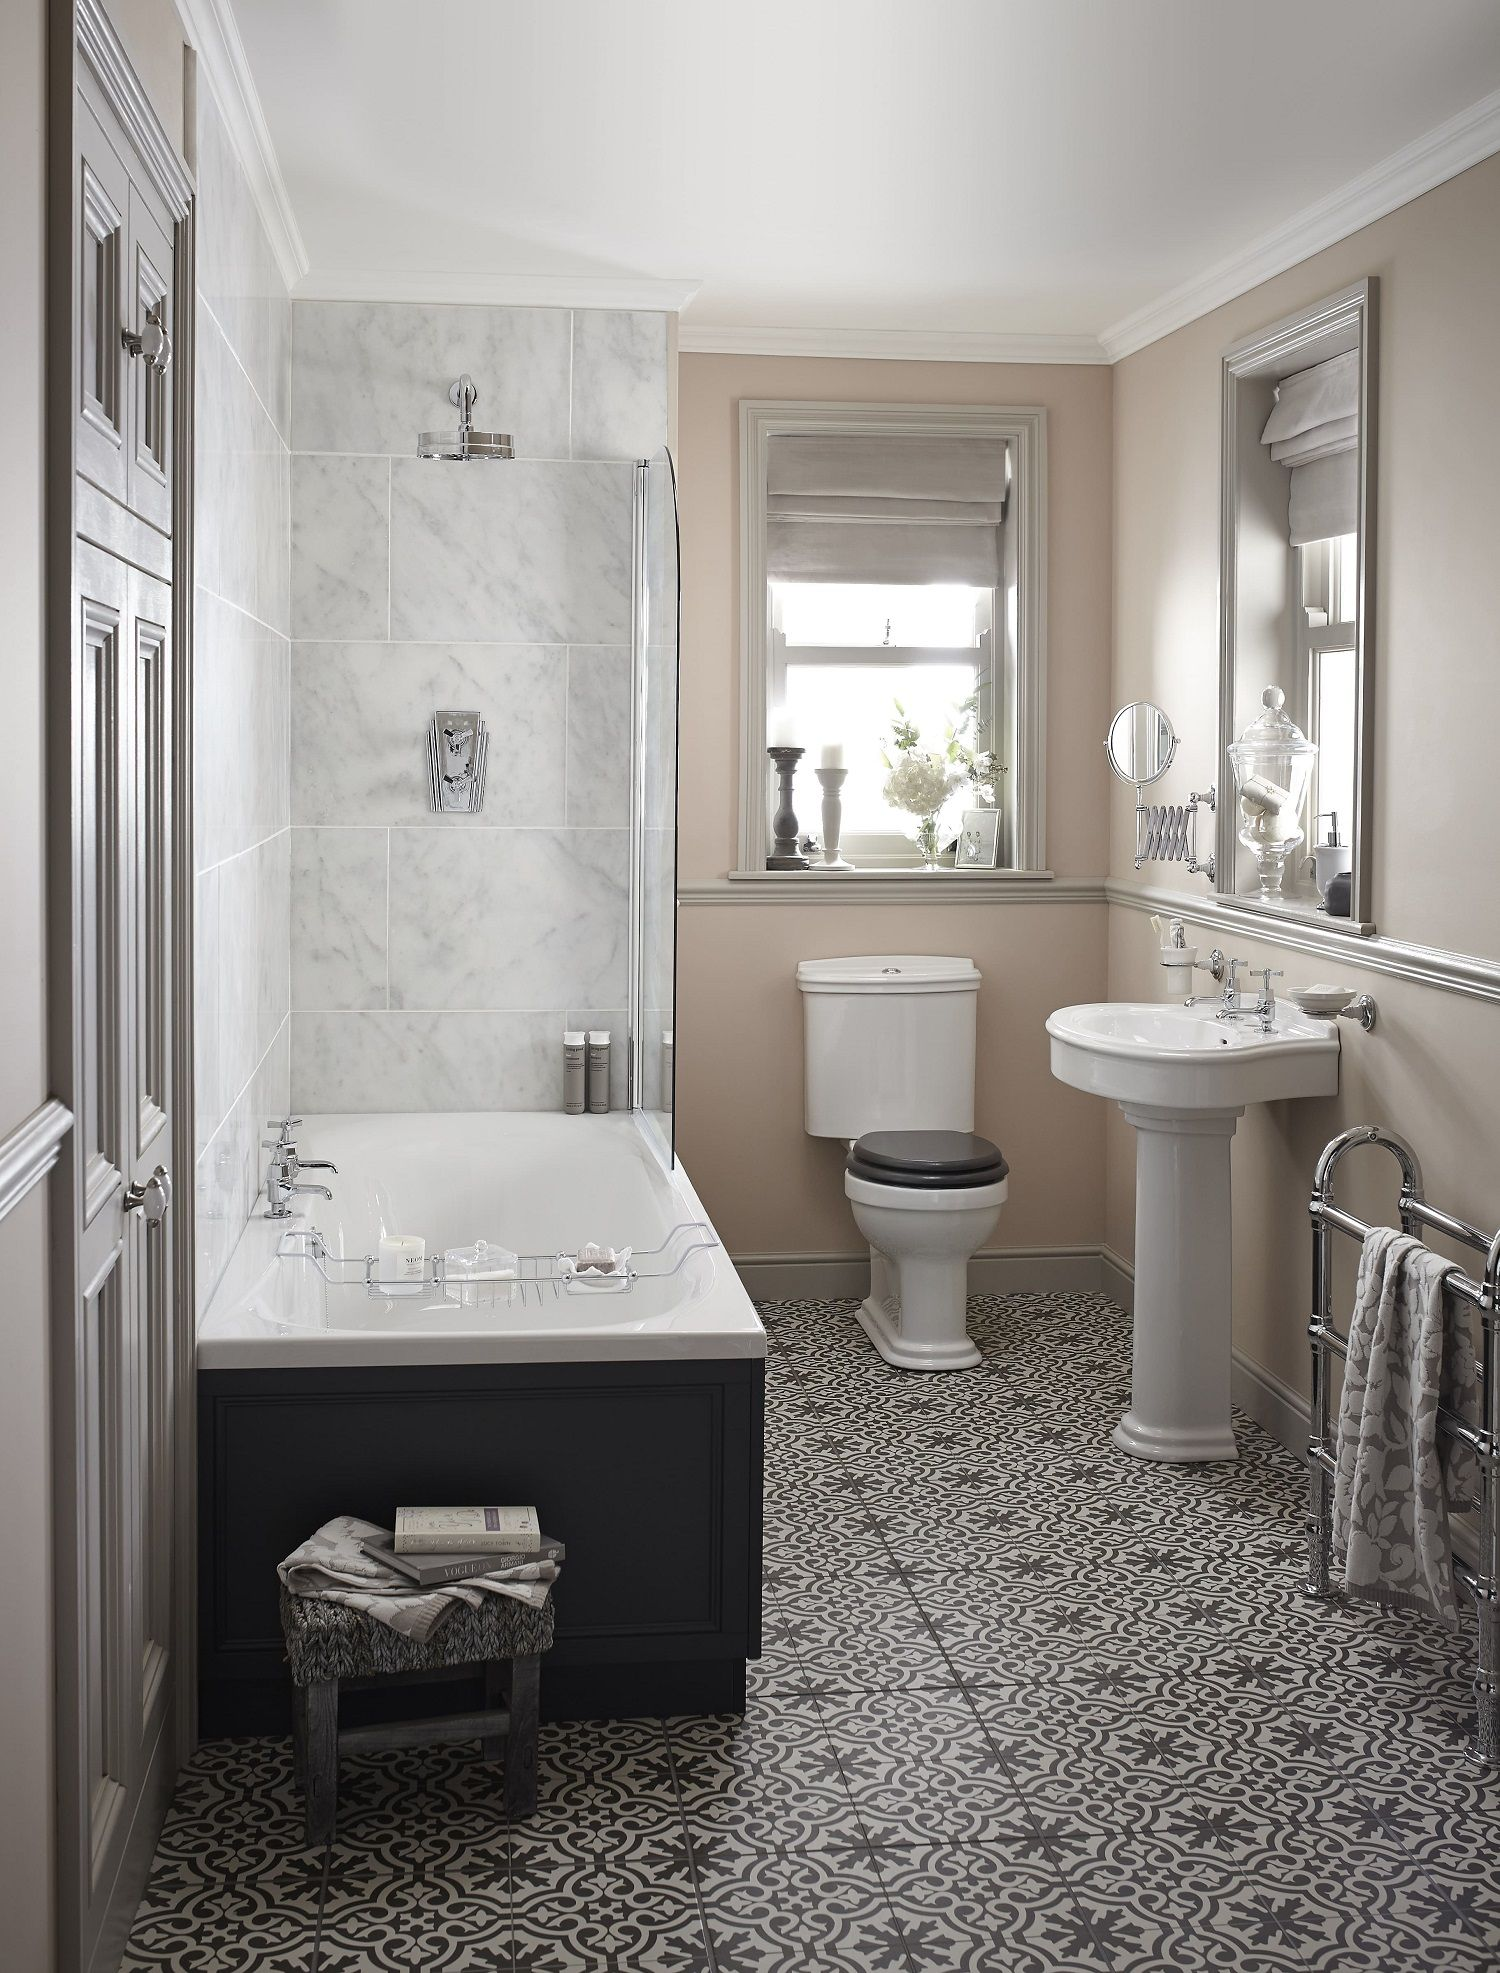 16 Country Bathroom Ideas To Inspire Your Decorating Choices on Rural Bathroom  id=85318